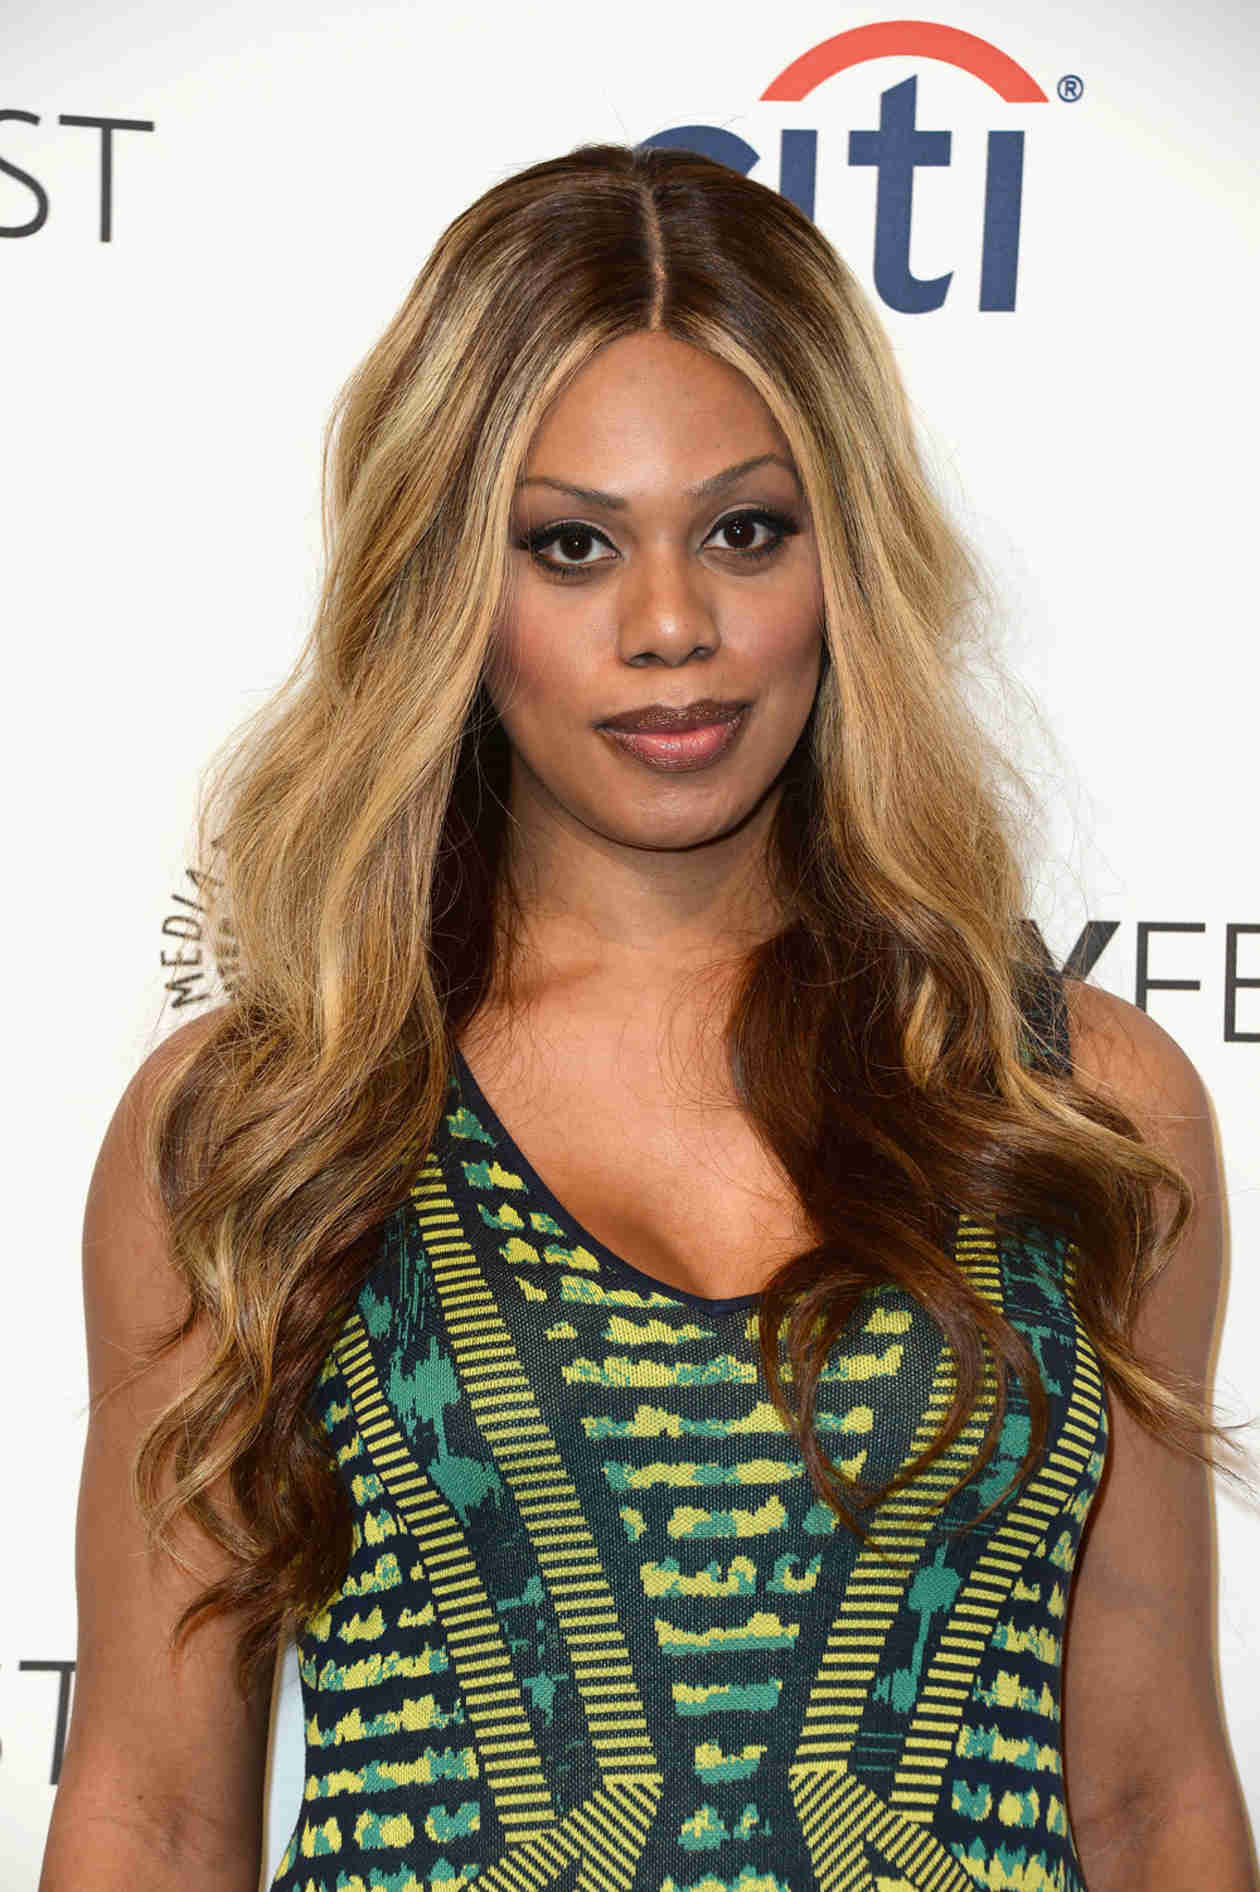 Laverne Cox Goes Makeup-Free in New John Legend Video